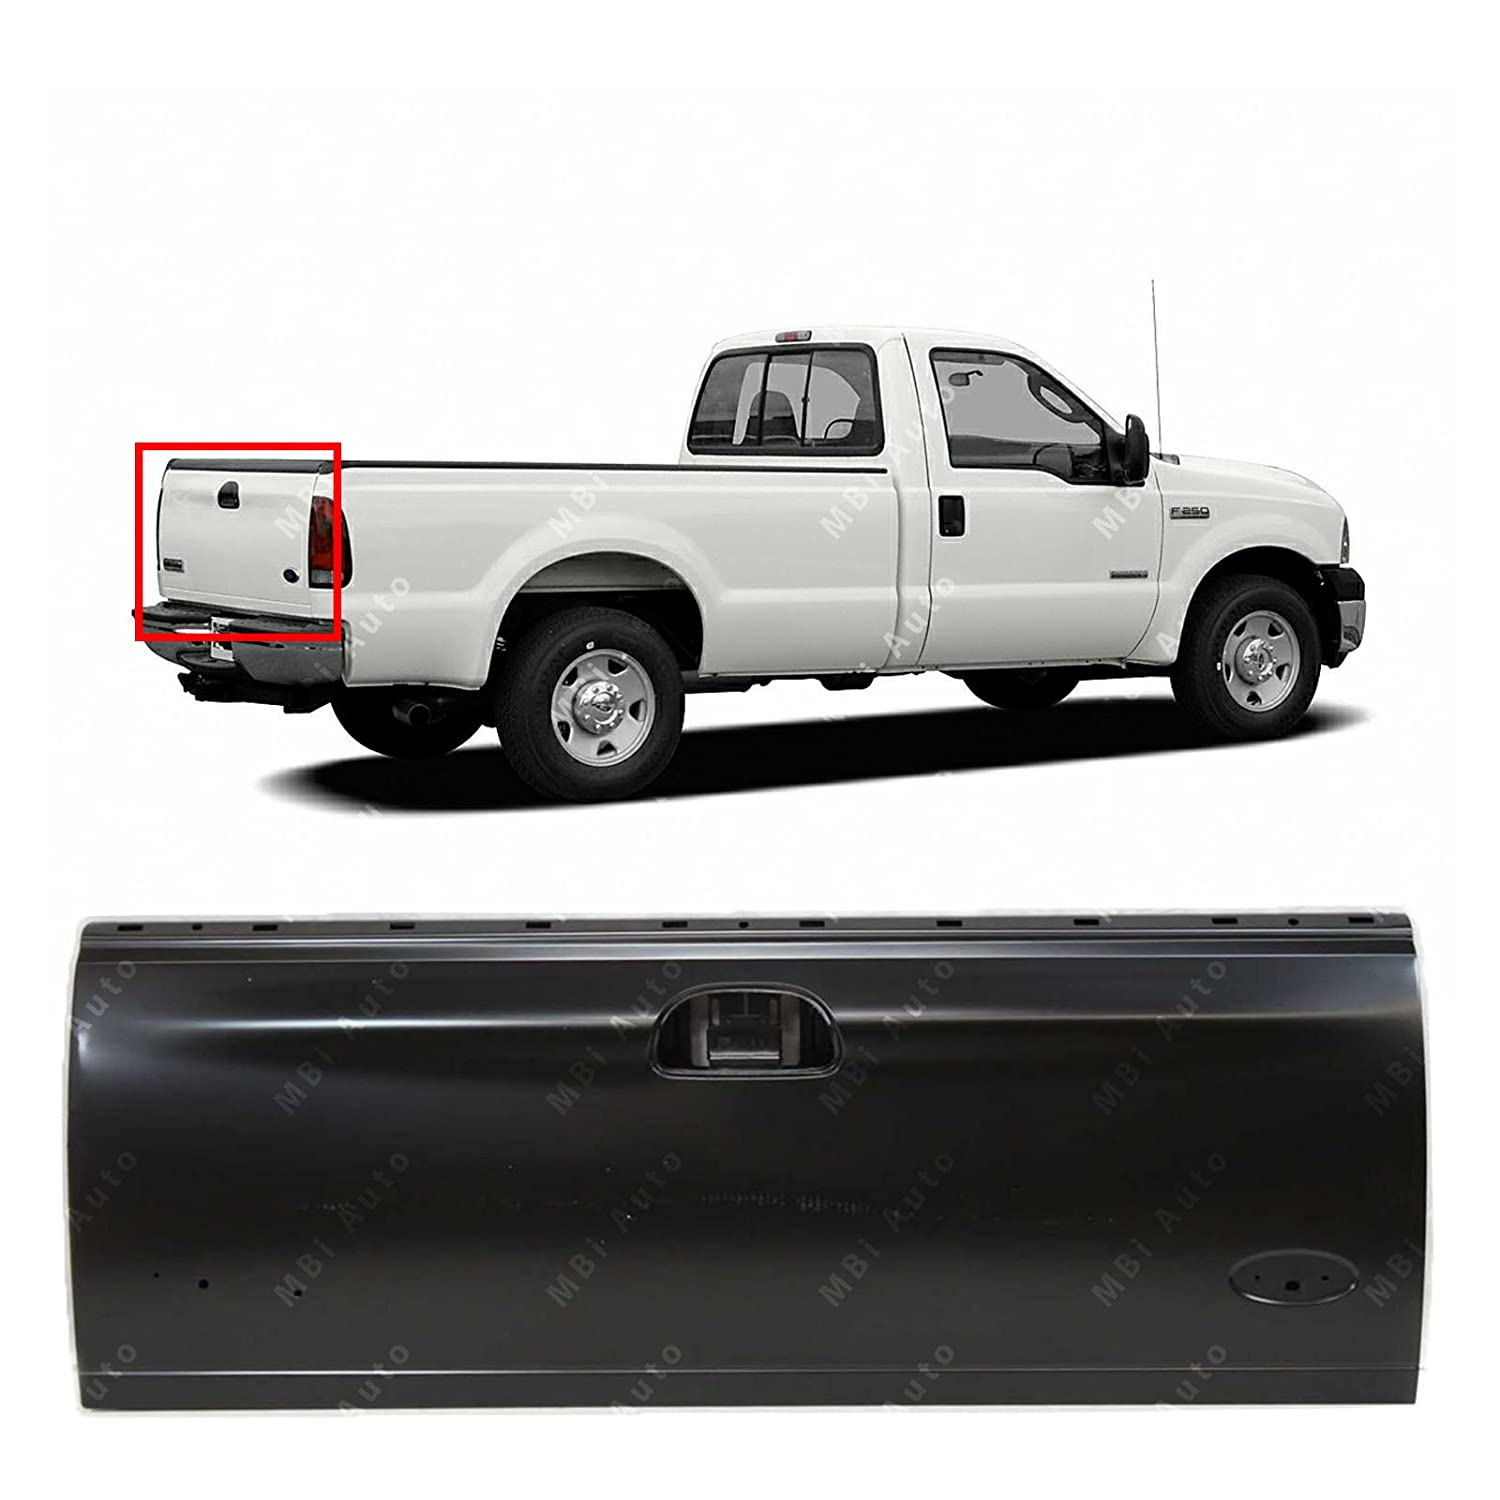 MBI AUTO - Primered Steel, Tailgate Shell for 1997-2003 Ford F150 1999-2007 F250 F350 F450 F550 Super Duty Styleside, FO1900113